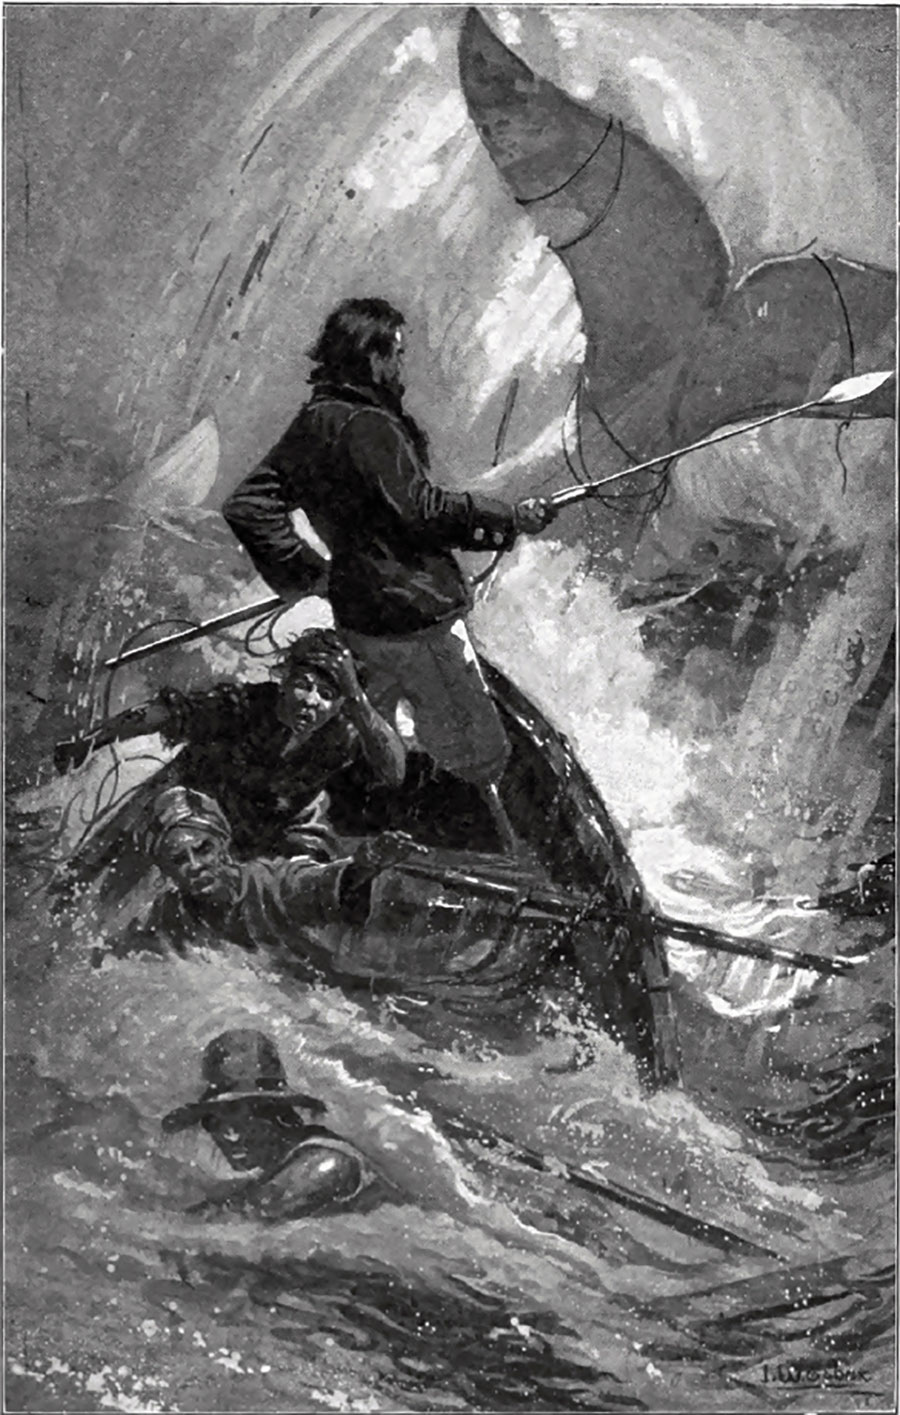 Herman Melville's Capt. Ahab preparing to cast his harpoon at Moby Dick